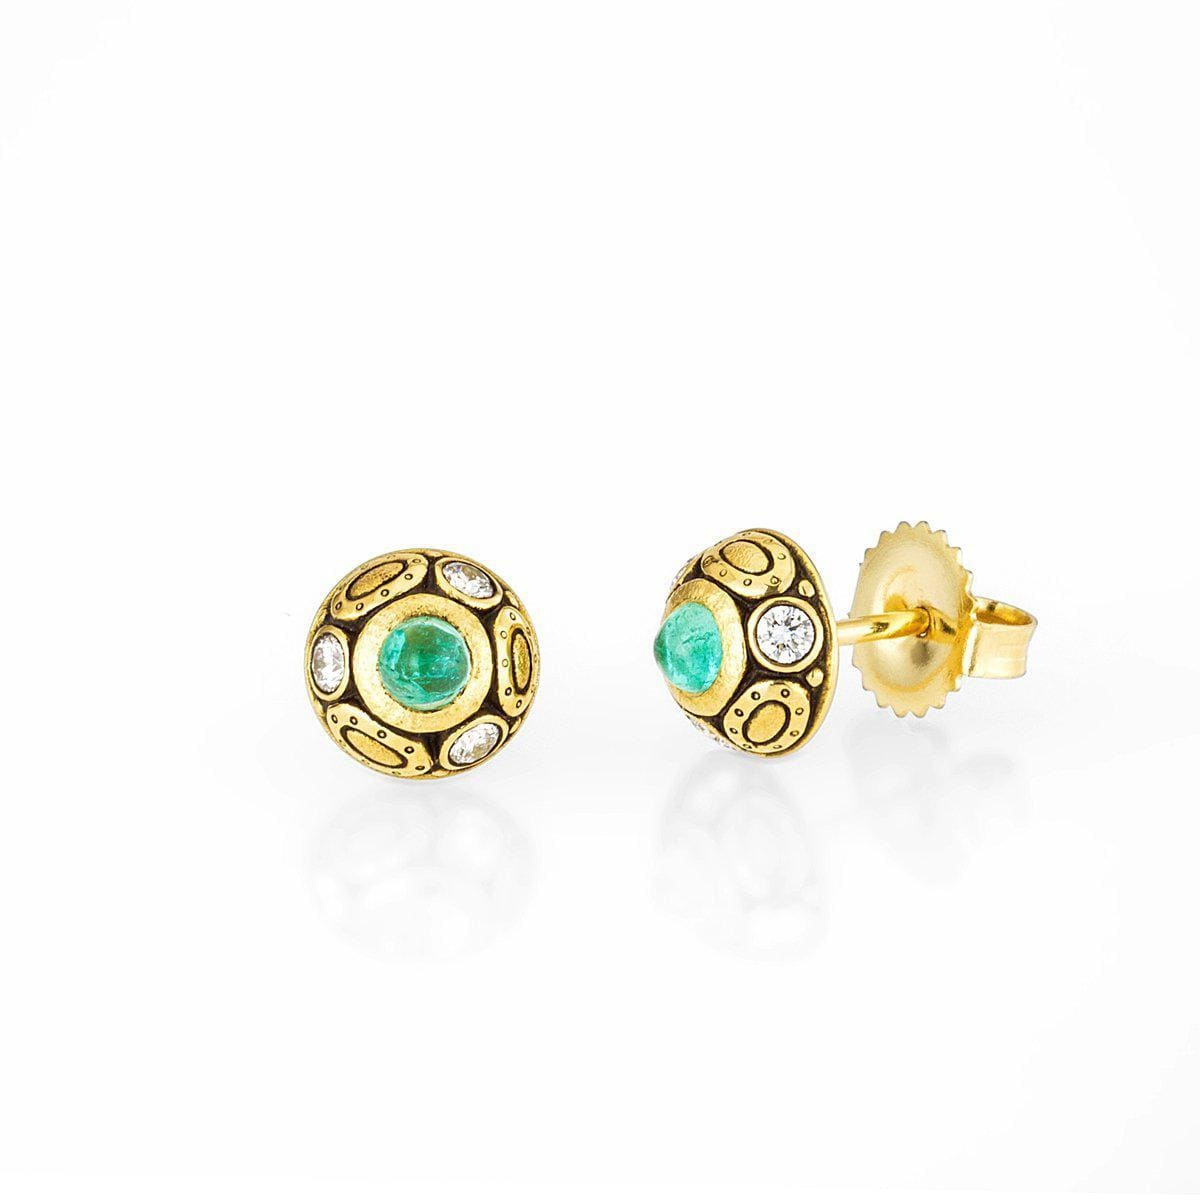 18K Oval Work Cabochon Paraiba Tourmaline & Diamond Earrings - E-69-Alex Sepkus-Renee Taylor Gallery